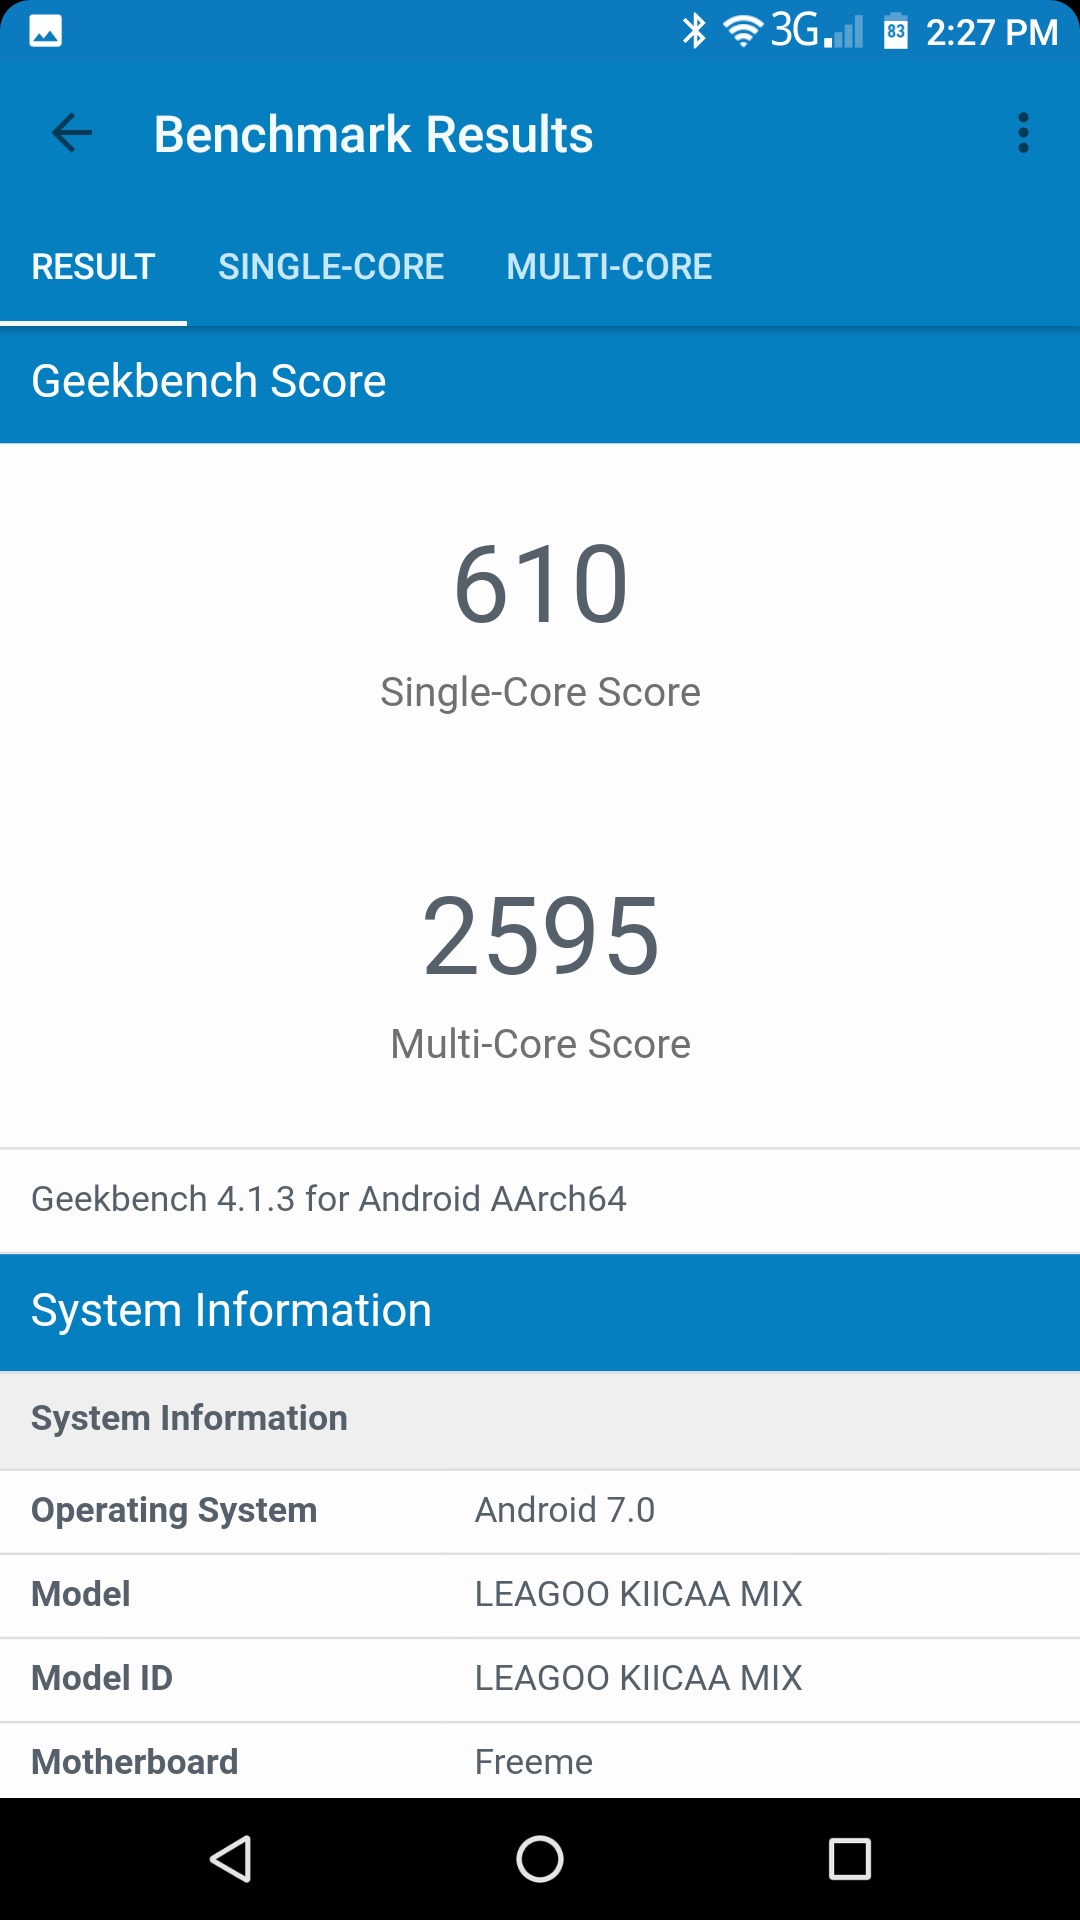 leagoo kiicaa mix geekbench